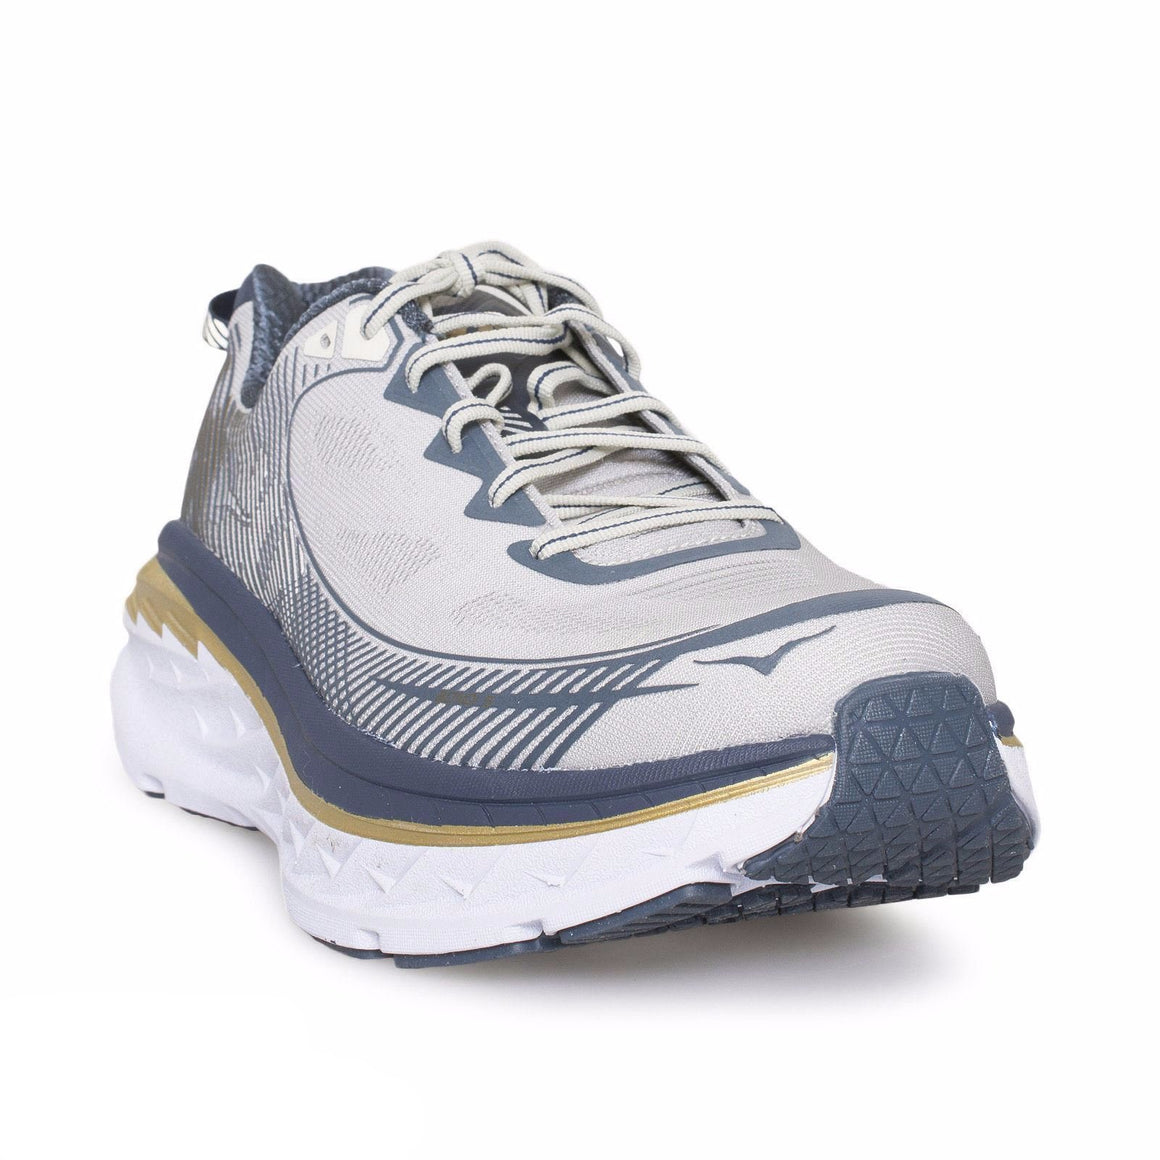 Hoka One One Bondi 5 Cool Gray / Midnight Navy Shoes - Men`s